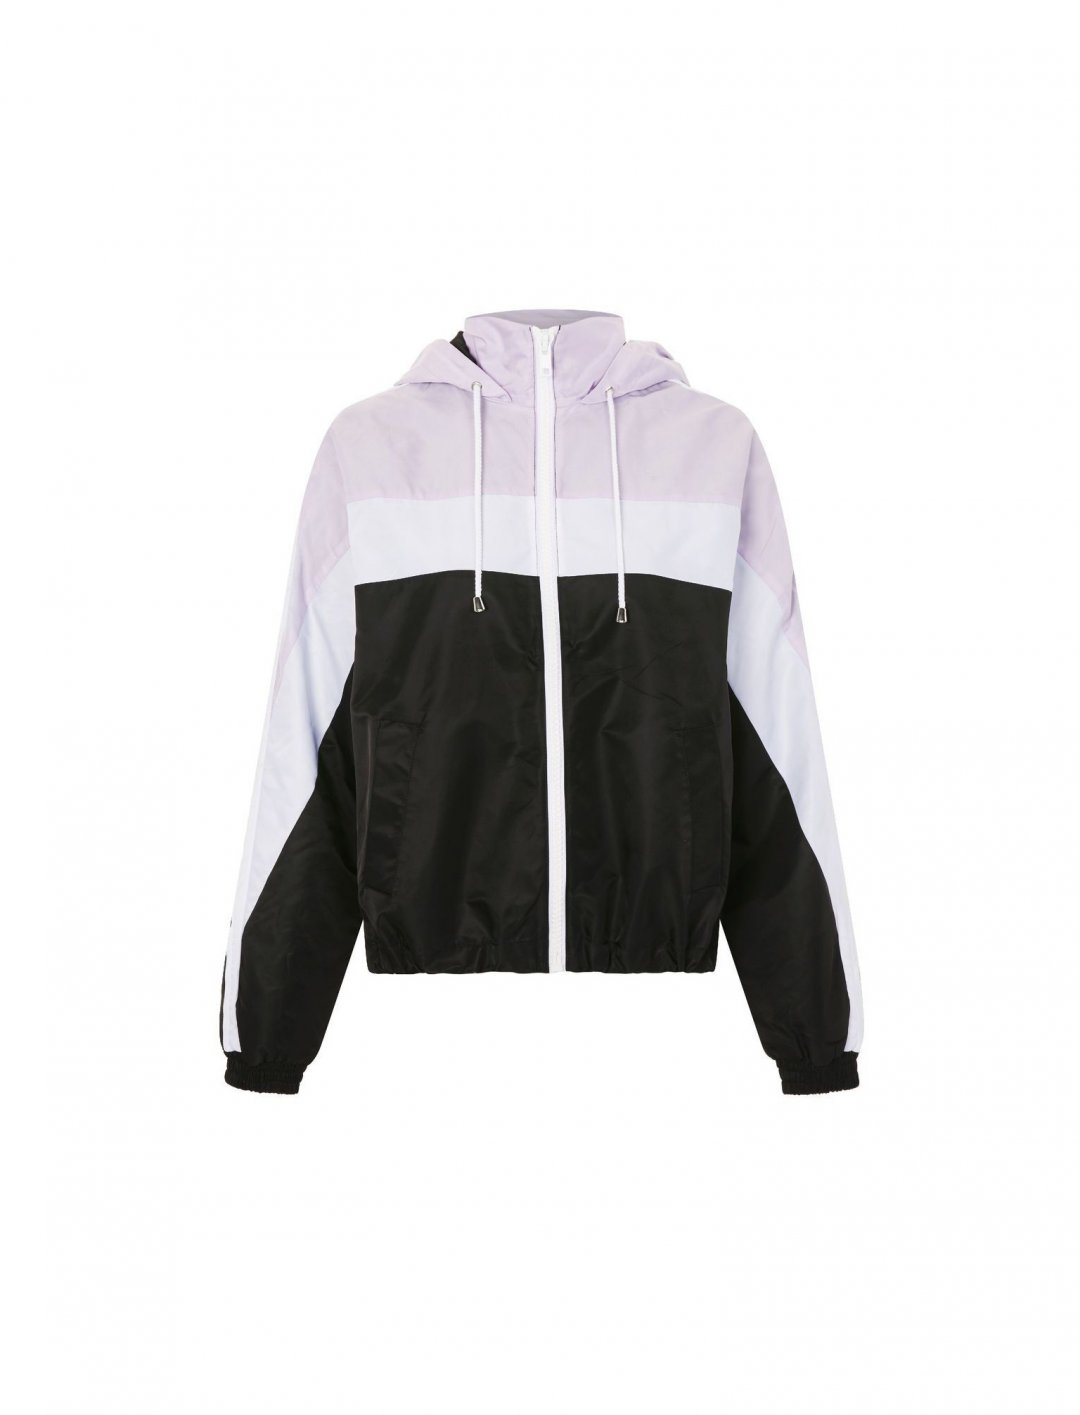 "Topshop Lilac Windbreaker Jacket {""id"":5,""product_section_id"":1,""name"":""Clothing"",""order"":5} Topshop"